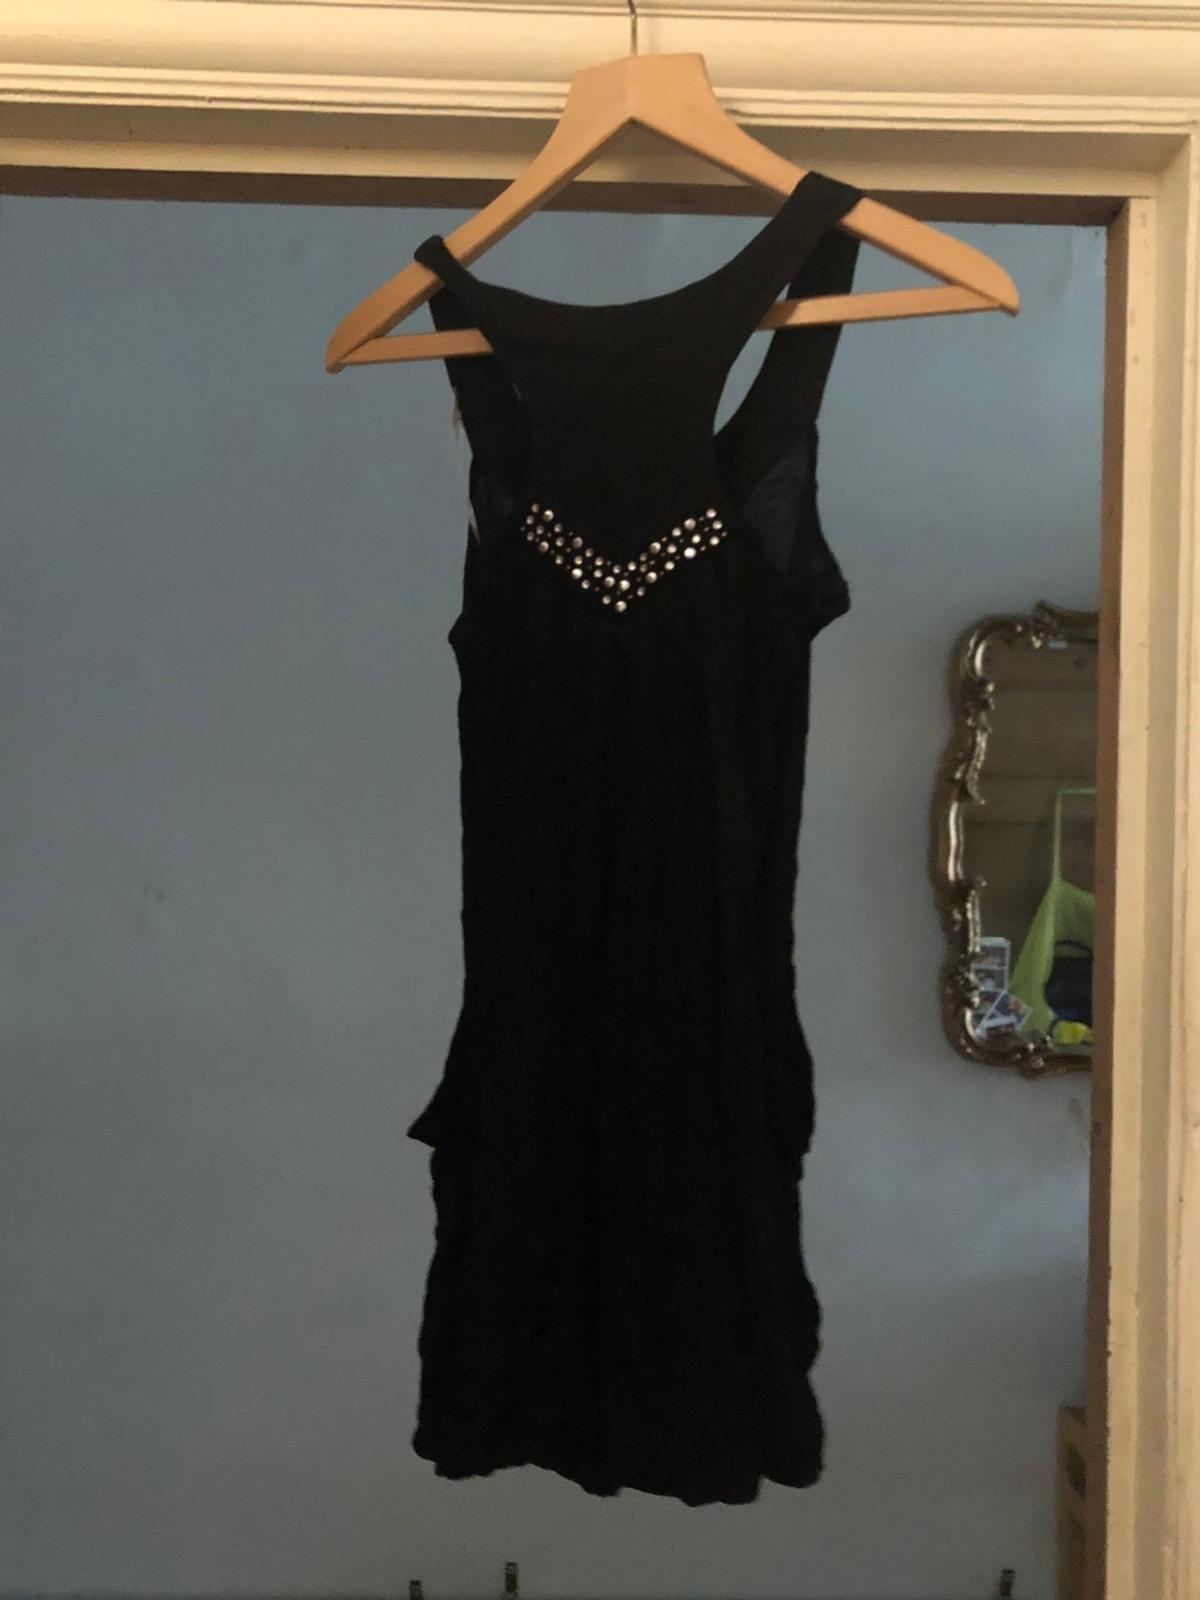 New black top, size 10 Can collect from London Nw10 or would deliver by Hermes